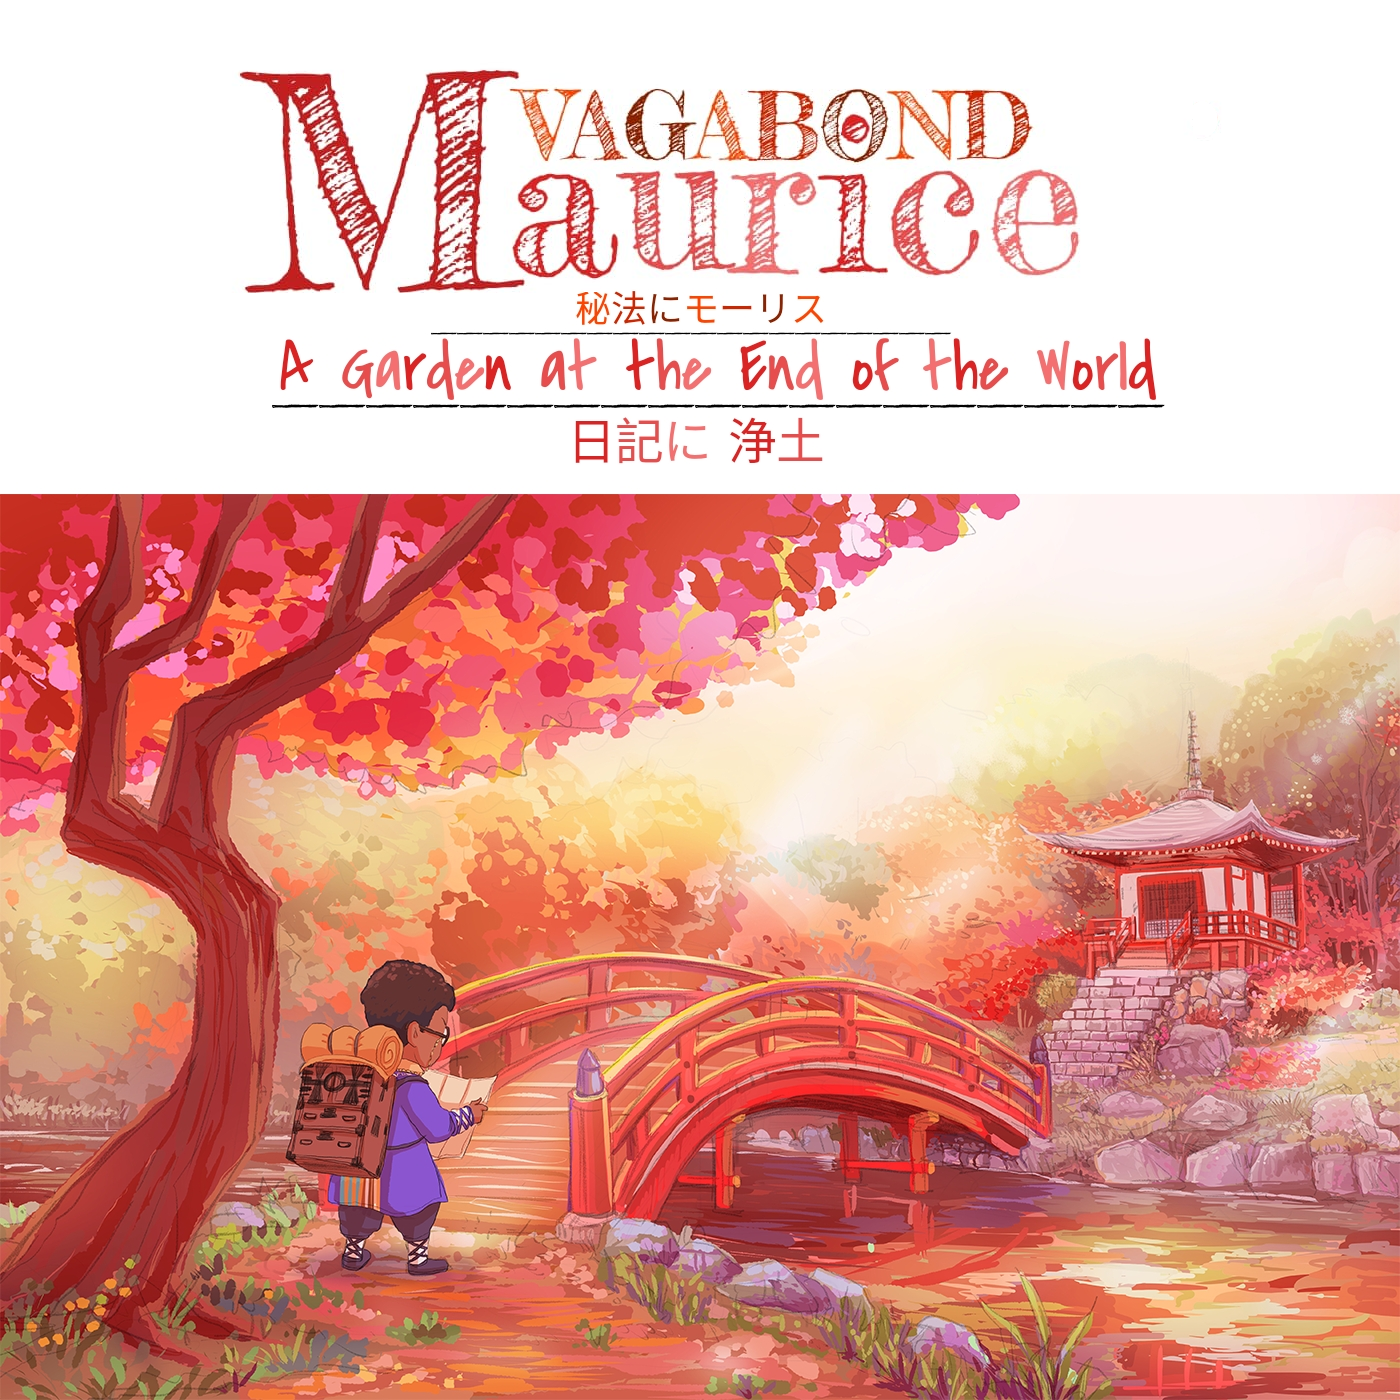 [Cover Art] A Garden at the End of the World - VM.png